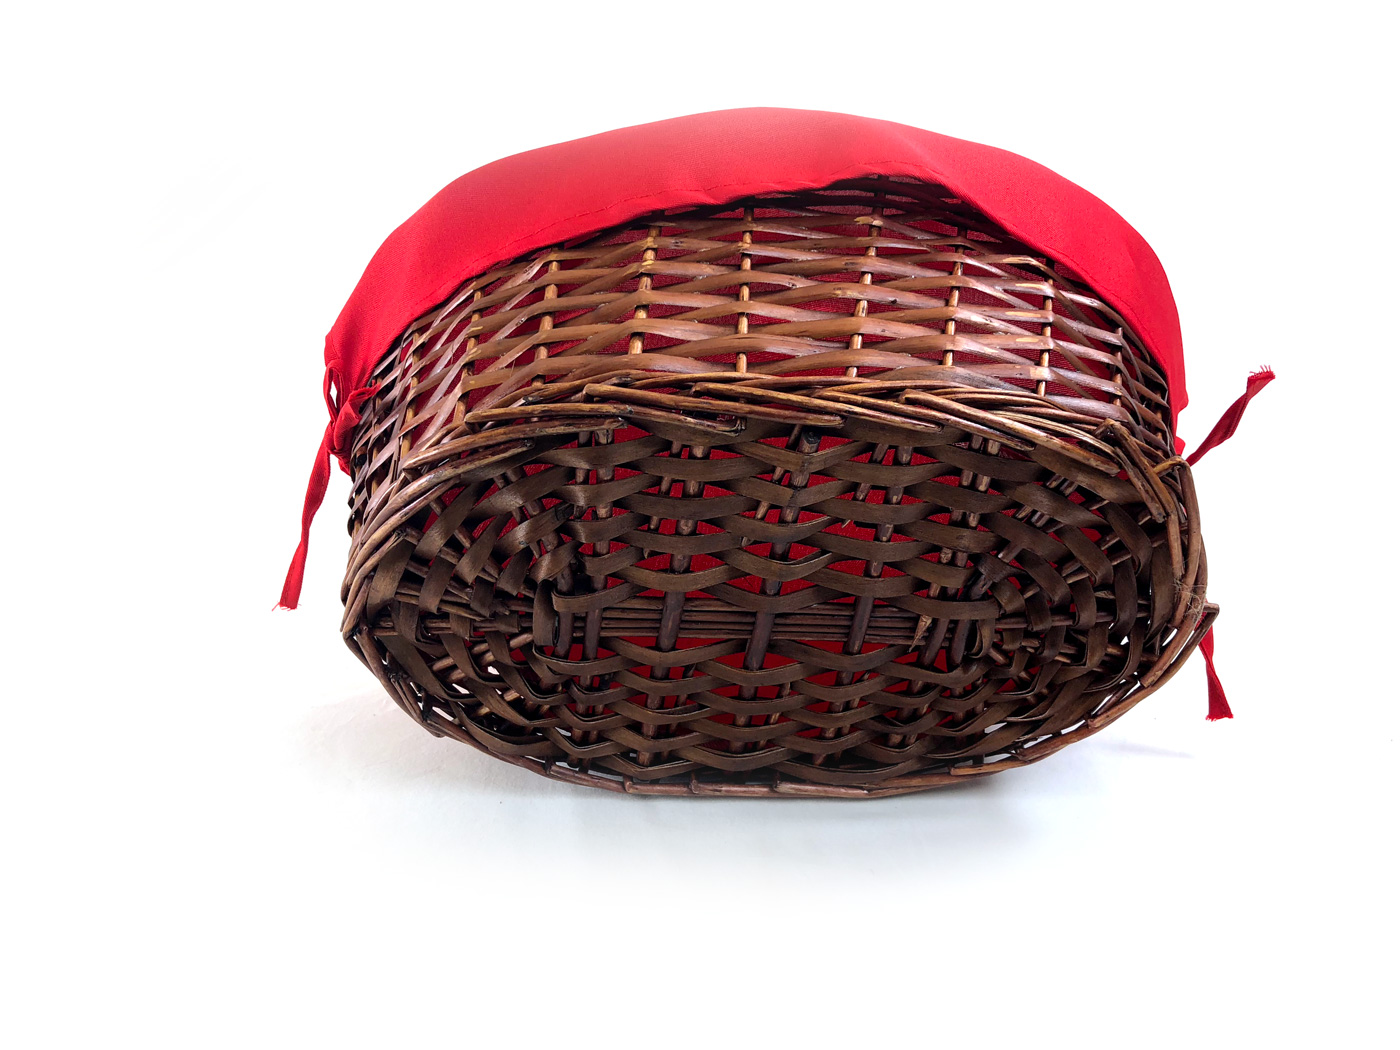 Oval Baskets With Red Liner & Handle Bottom